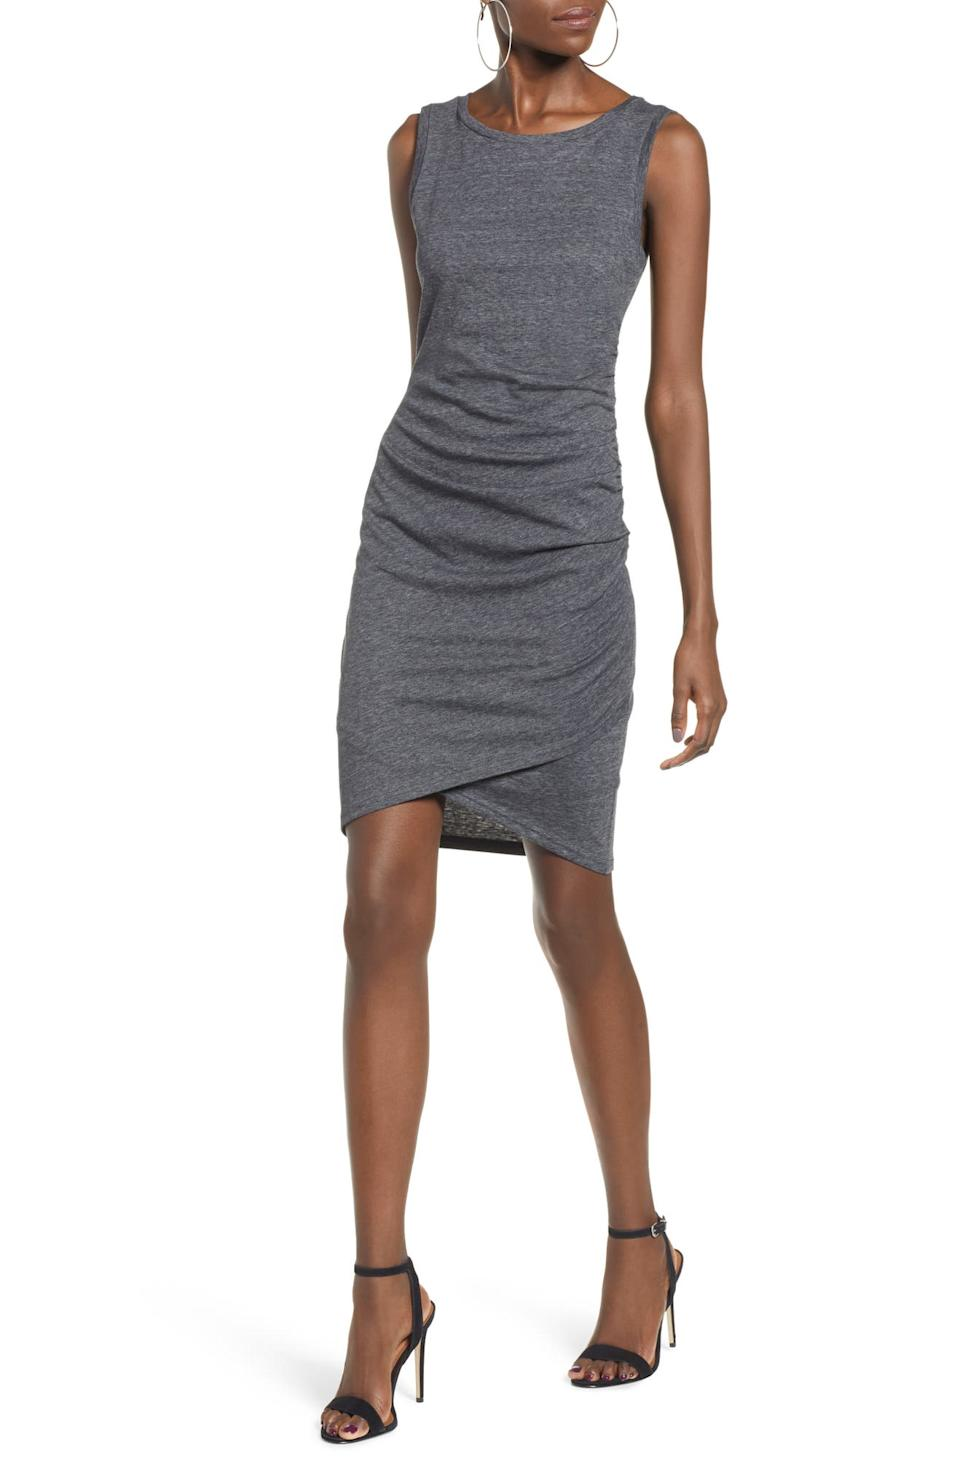 Save 30% on the Ruched Body-Con Tank Dress. Image via Nordstrom.